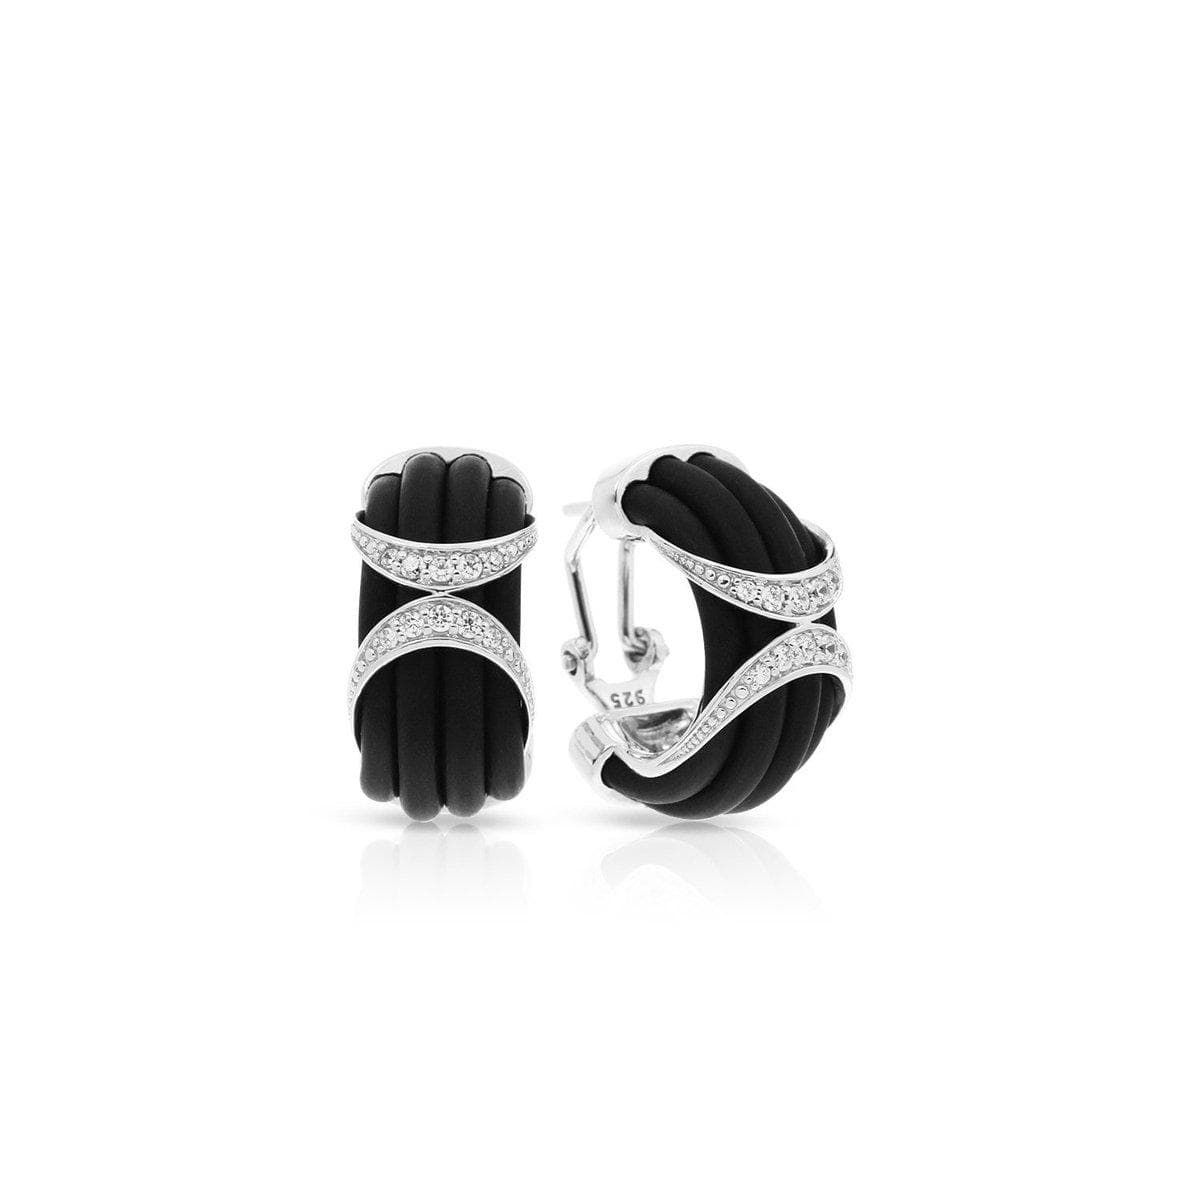 Xena Black Earrings-Belle Etoile-Renee Taylor Gallery